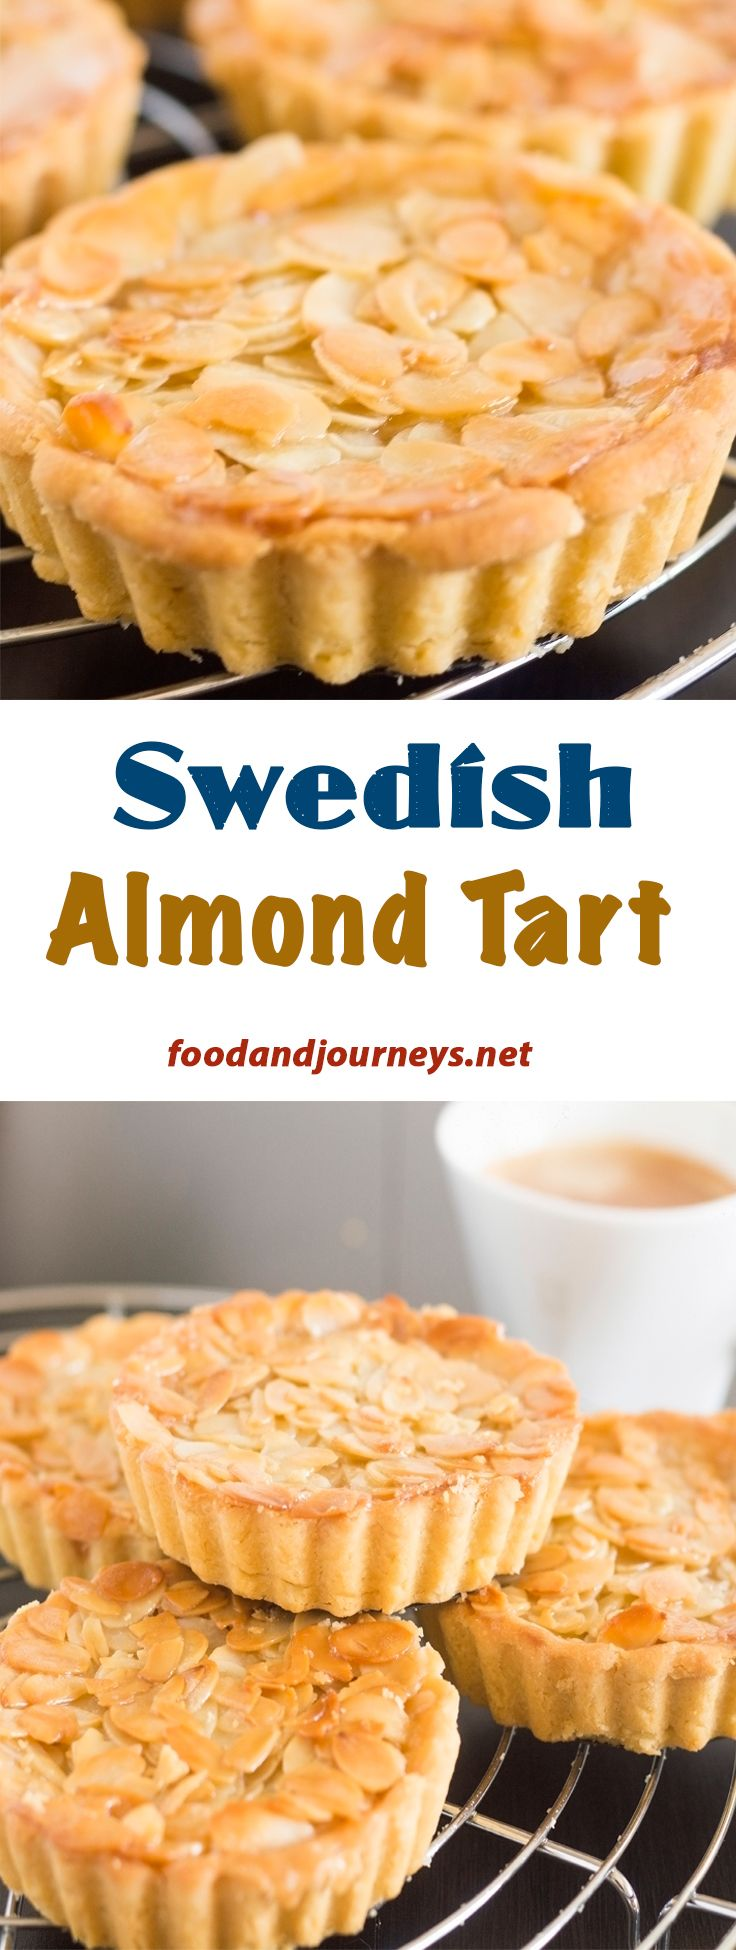 Great with coffee or tea for snack (or breakfast)! This tart is undeniably made of almonds; you get the creaminess, sweetness and crunch of almonds in every bite!